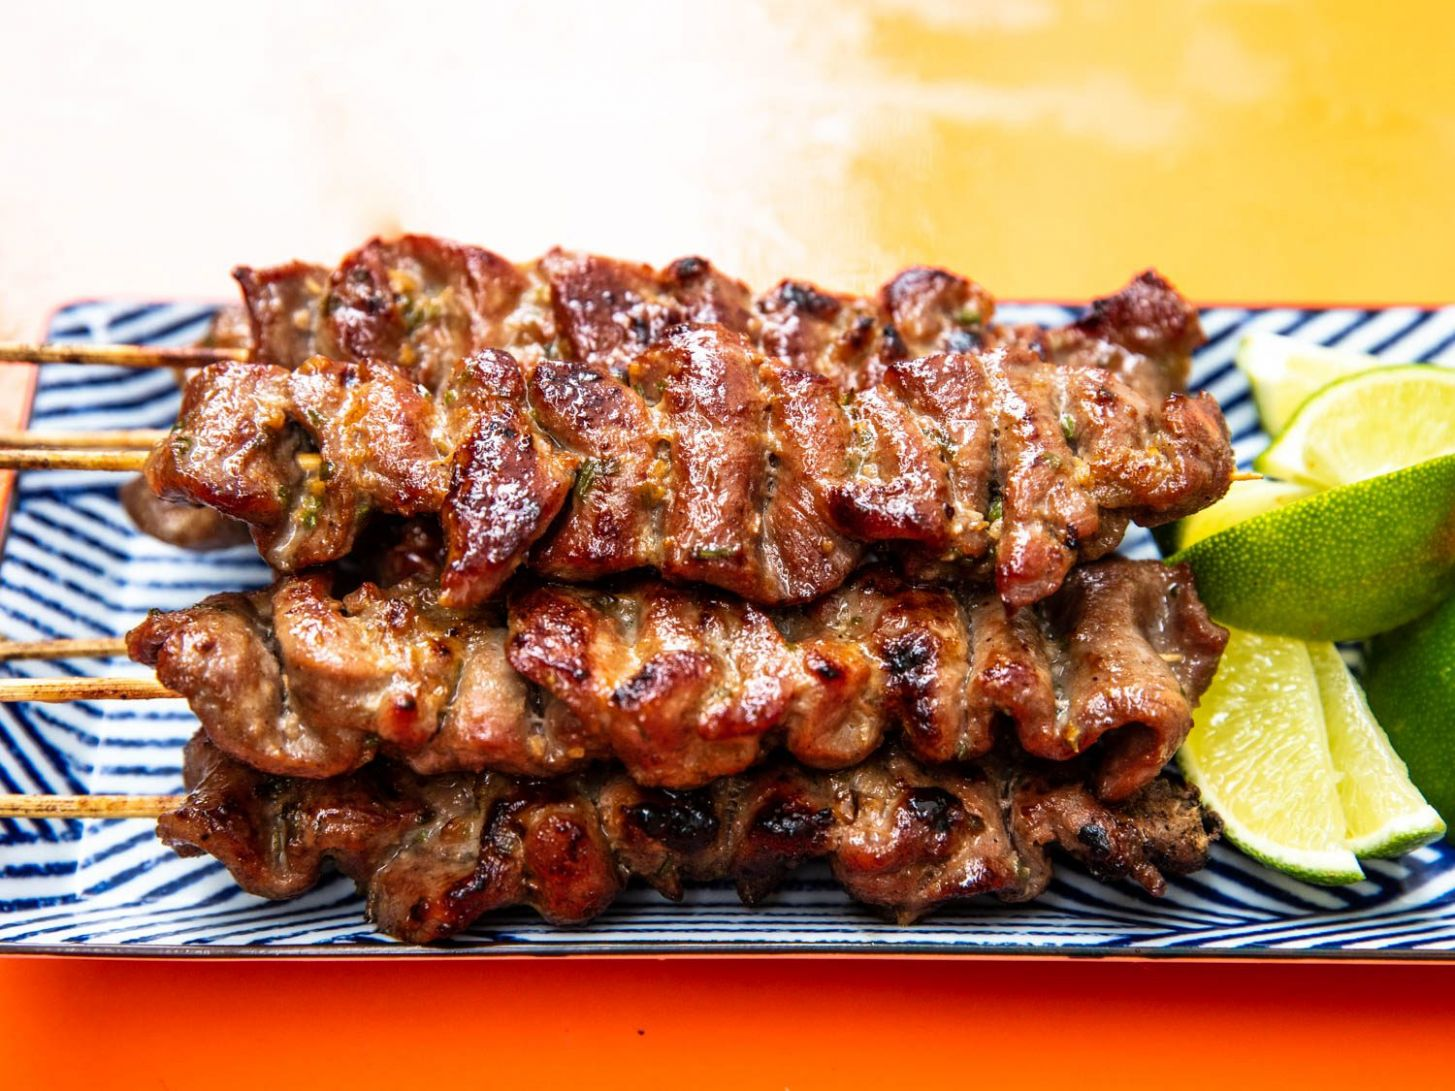 Thai-Style Grilled Pork Skewers (Moo Ping) Recipe